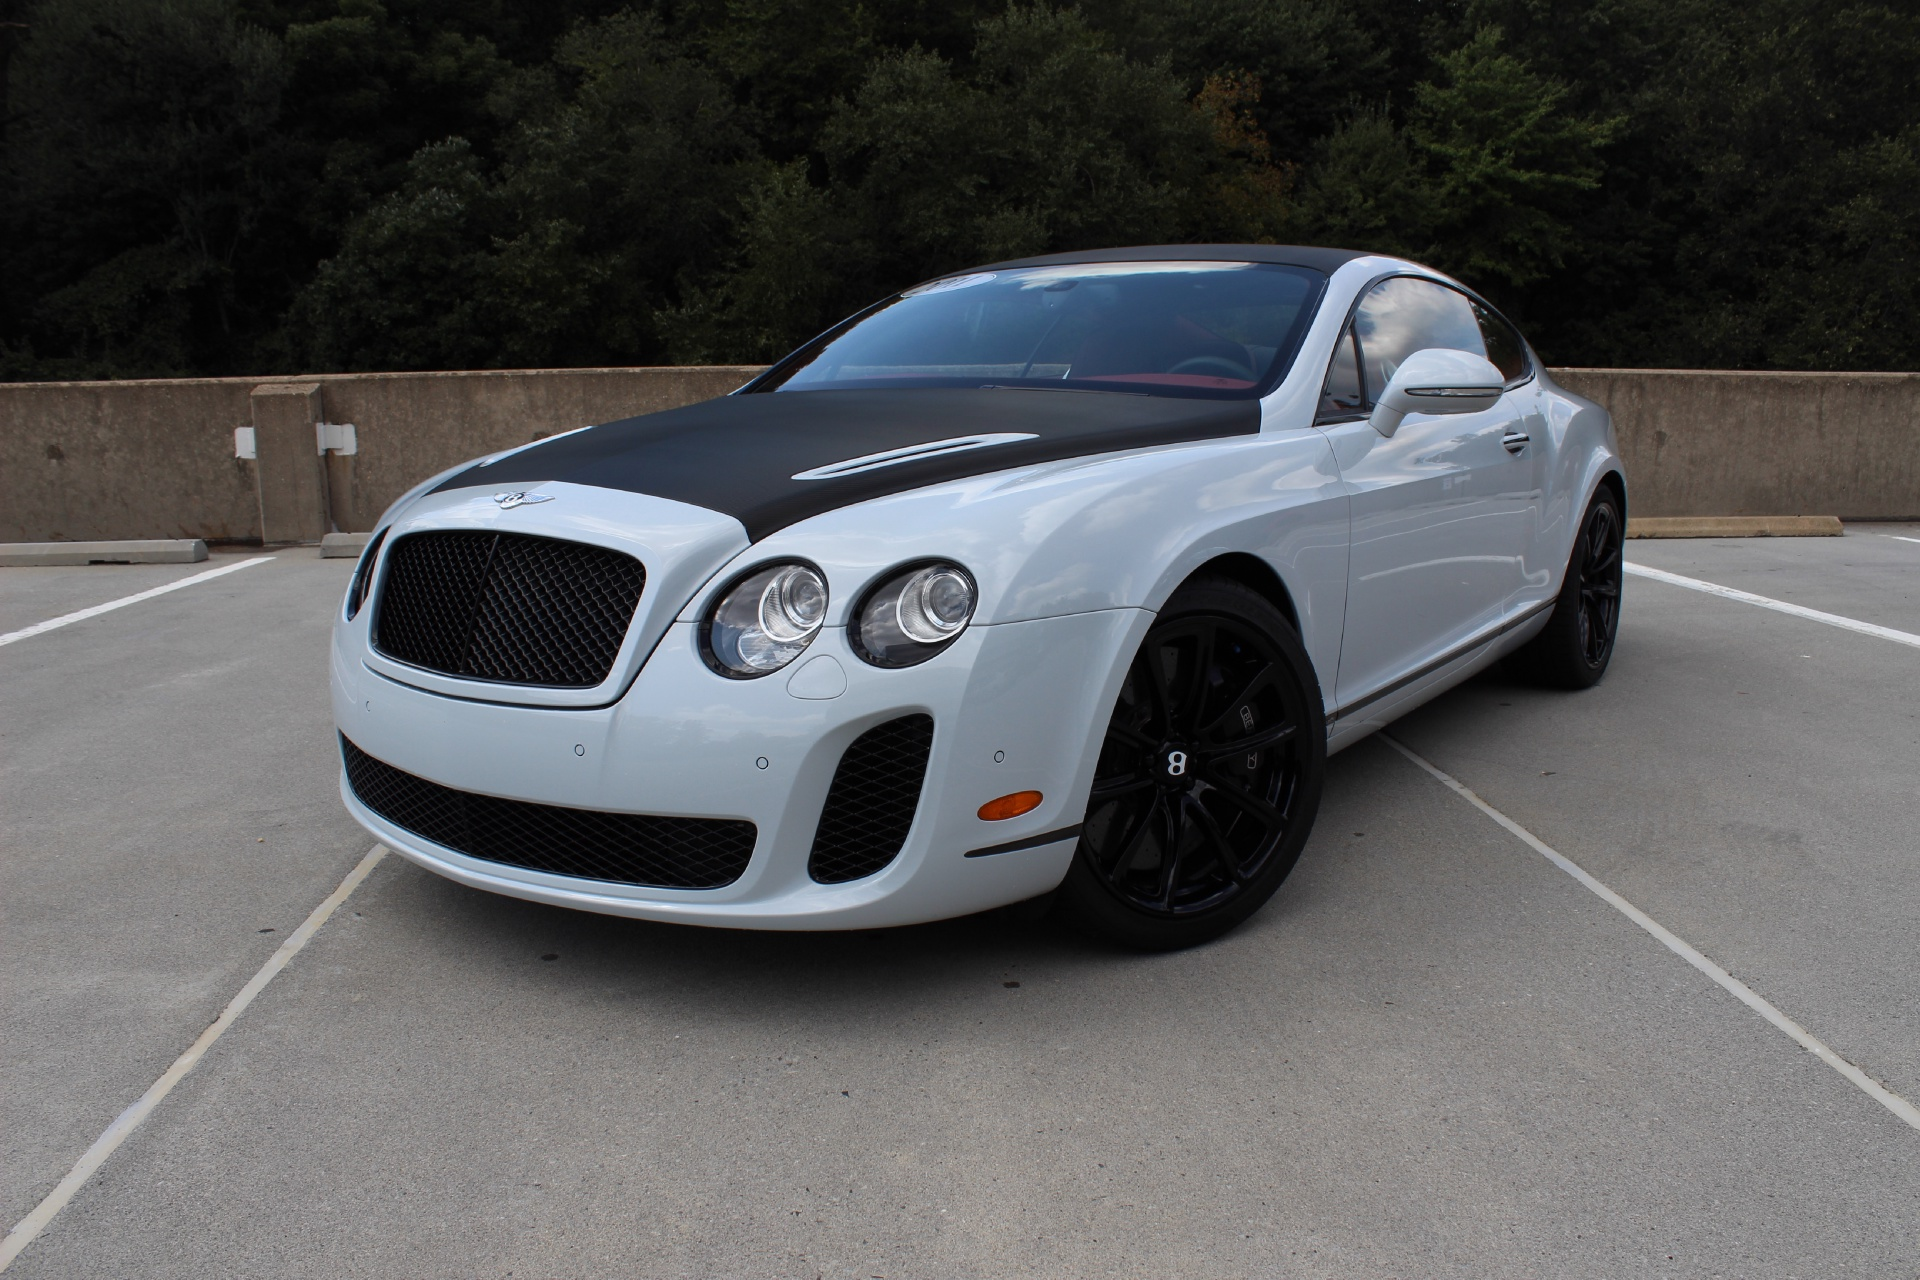 granite supersports watch loaded over bentley continental joey hotspur call for sale car